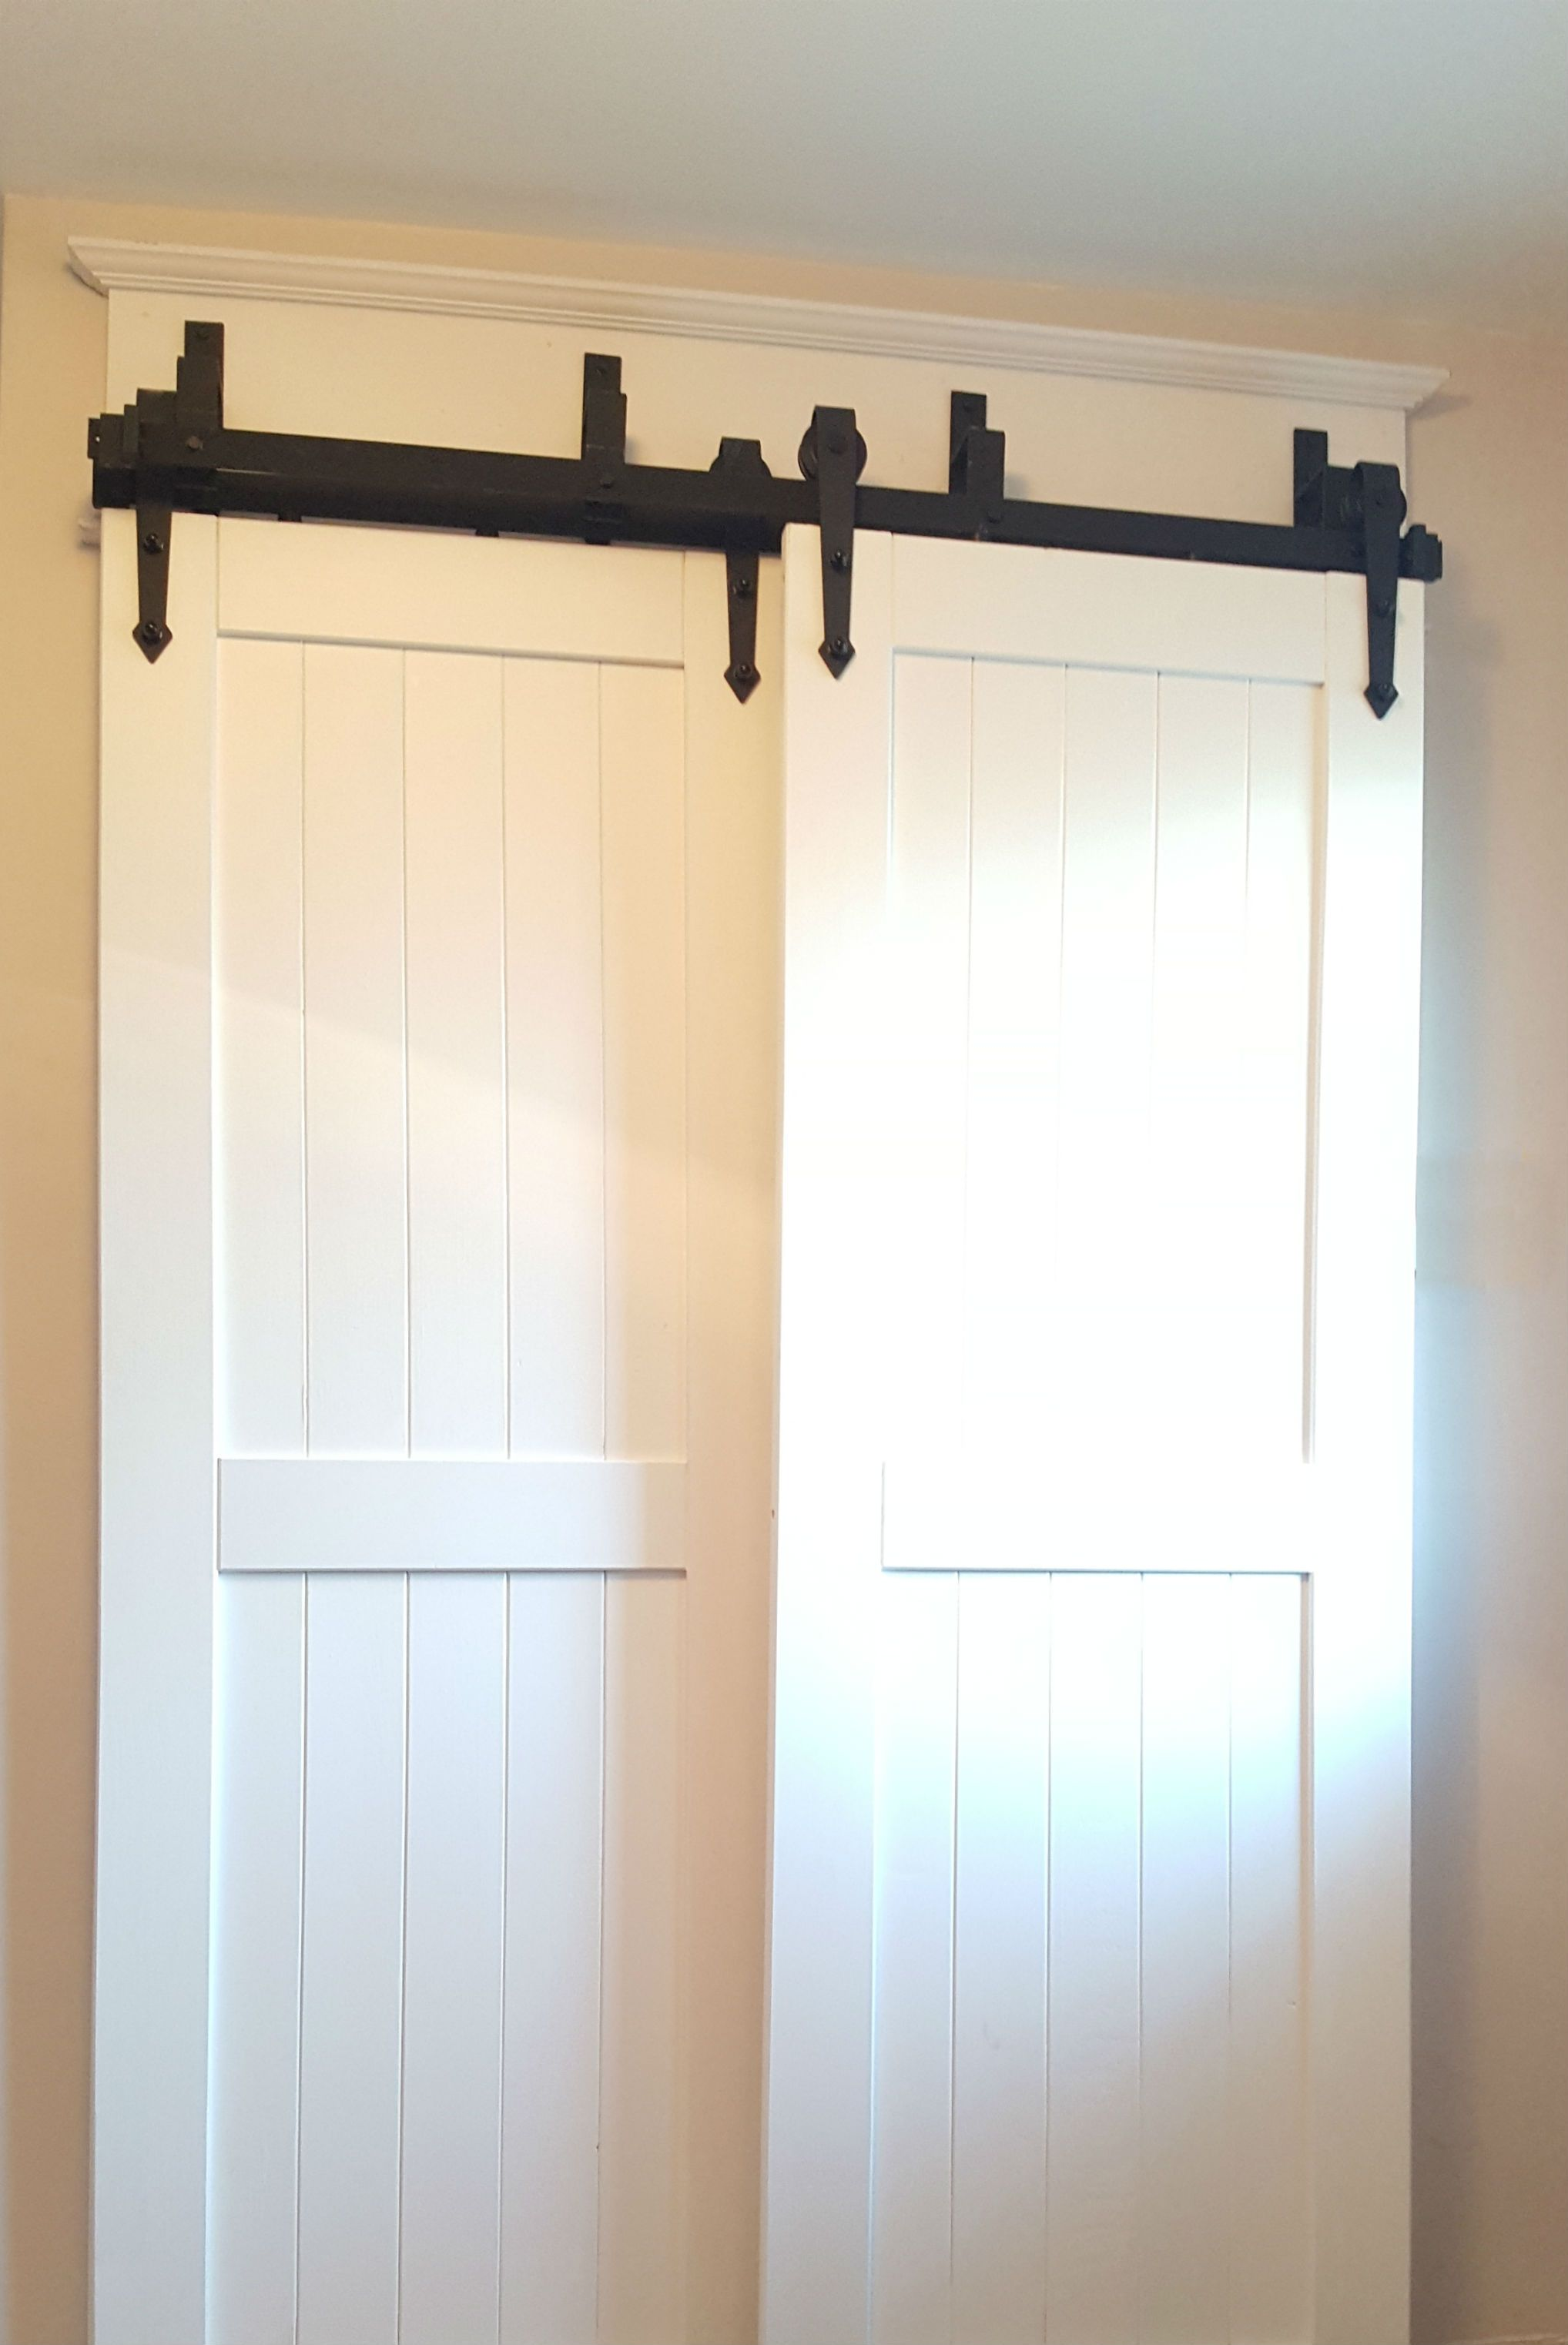 Bypass Barn Door Hardware Easy To Install Canada Bypass Barn Door Hardware Bypass Barn Door Barn Door Closet